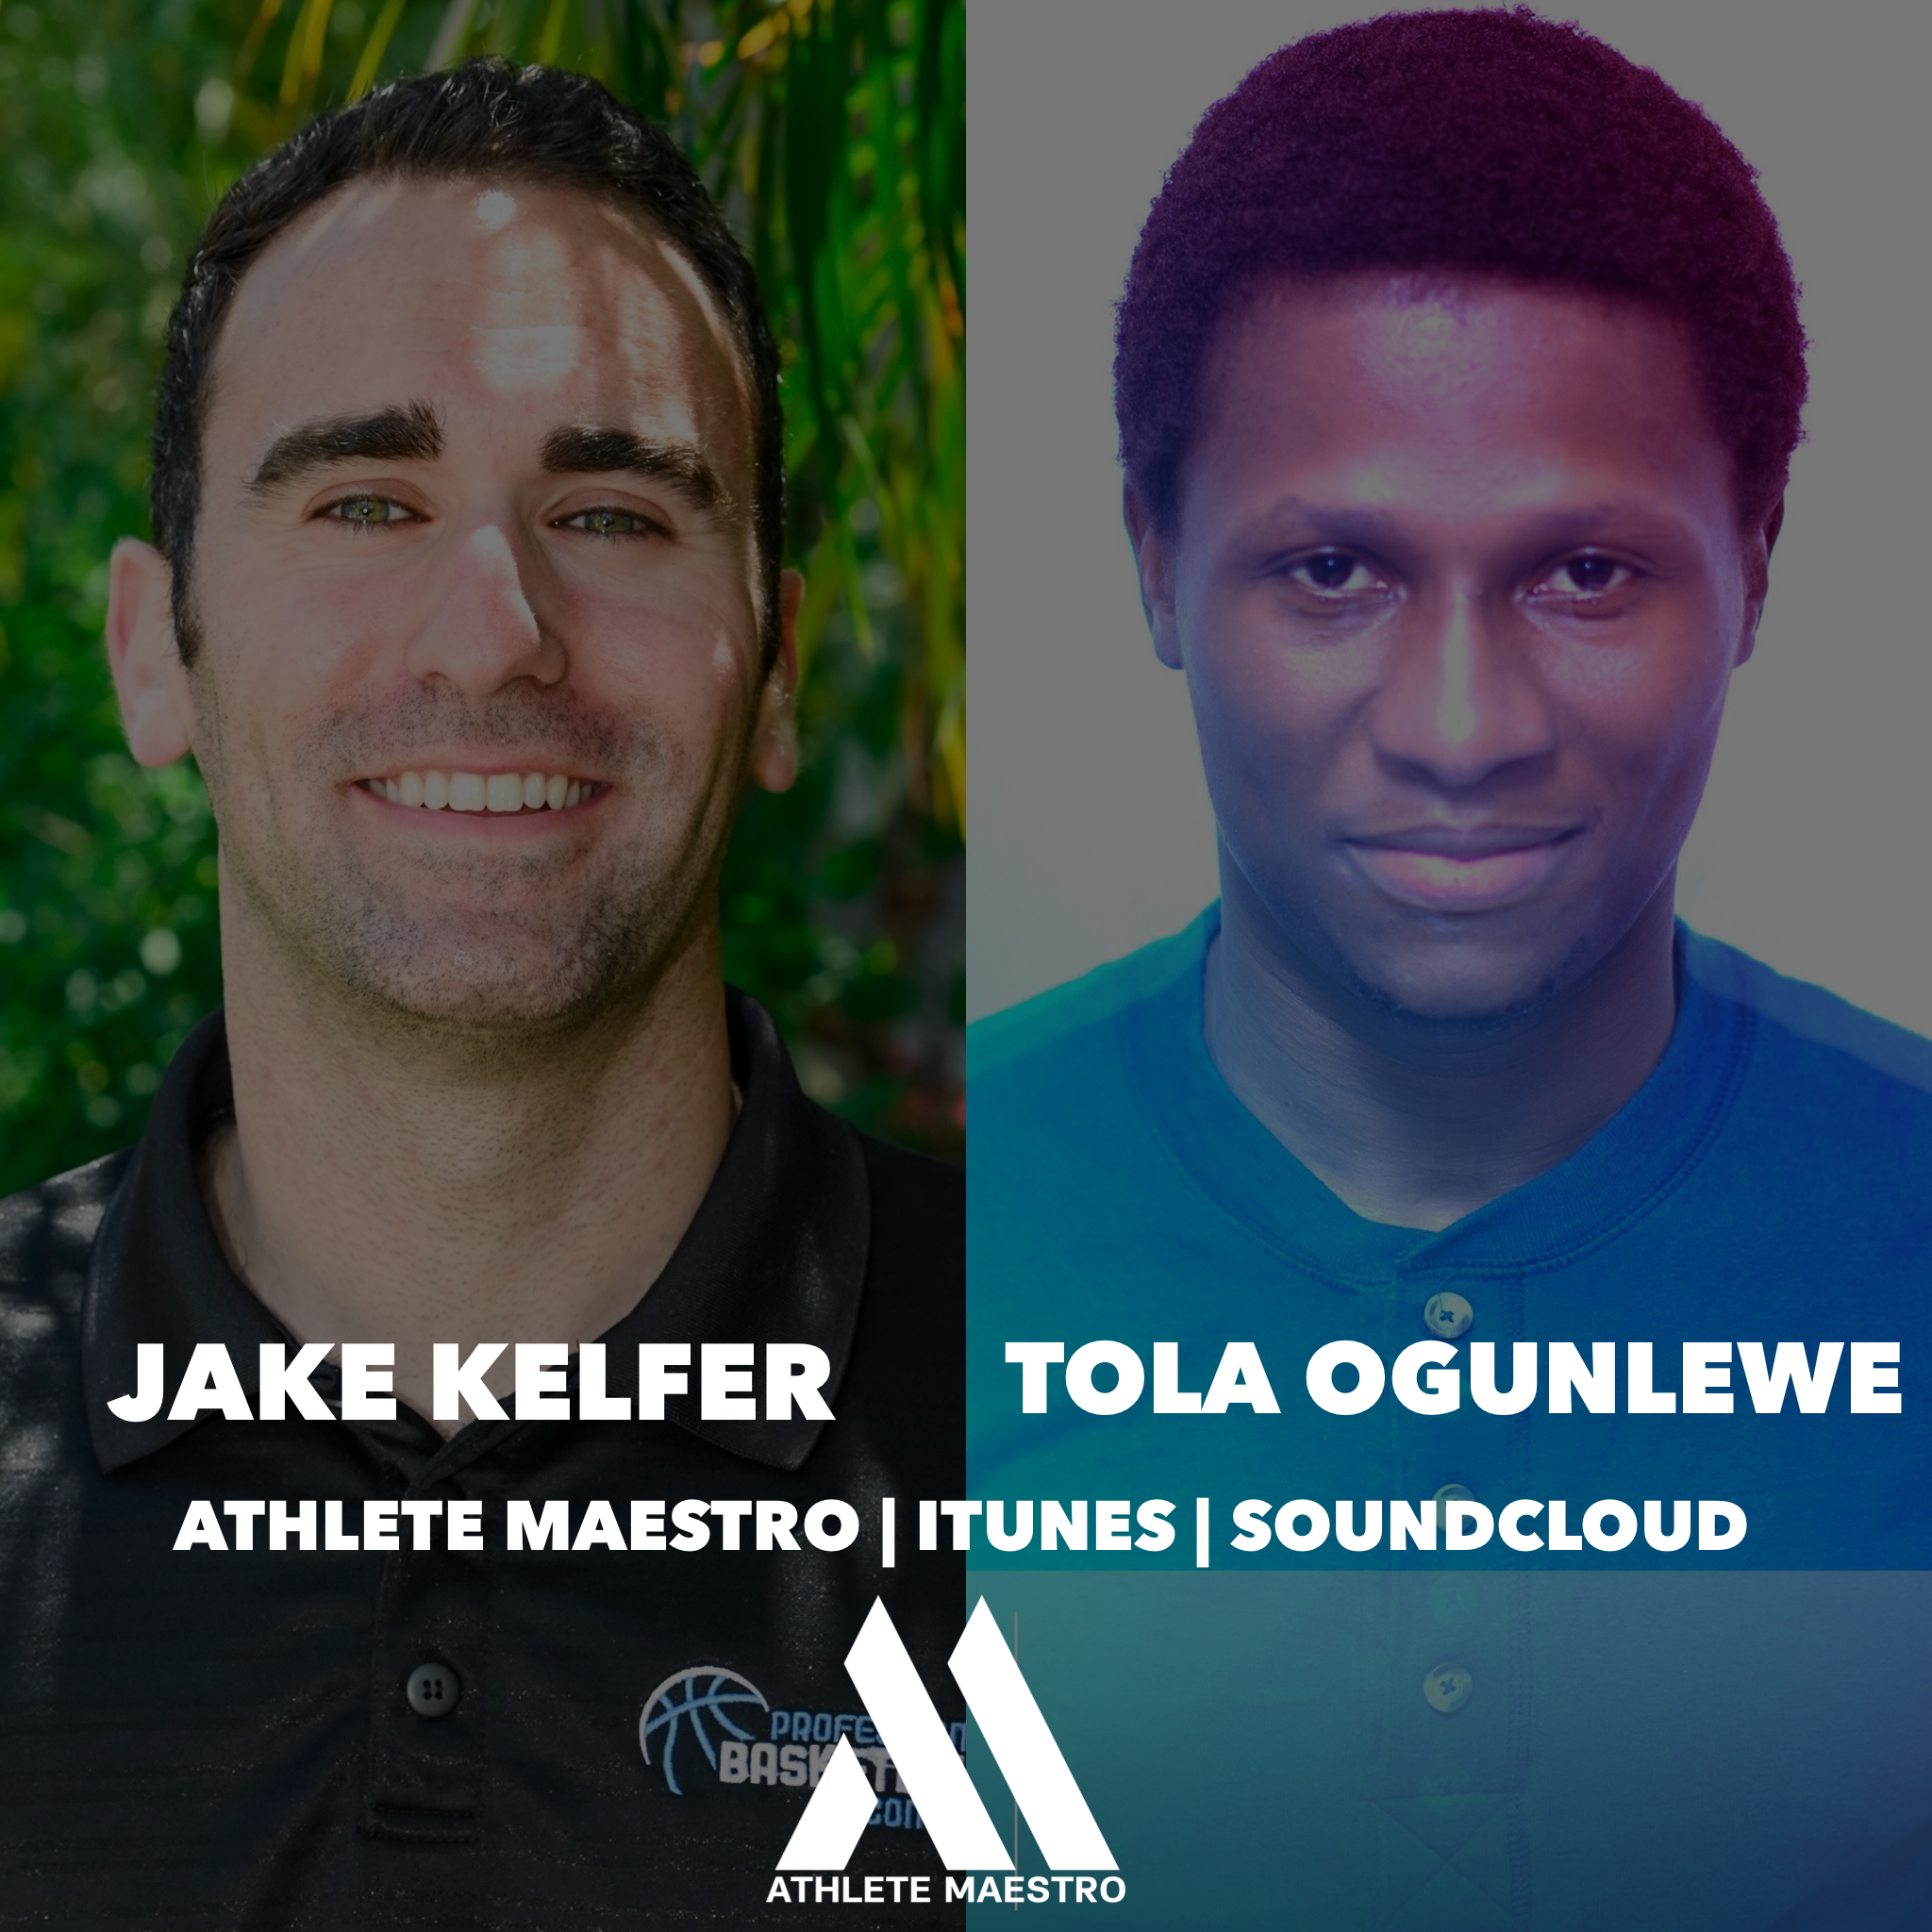 How To Stand Out And Separate Yourself As An Athlete with Jake Kelfer